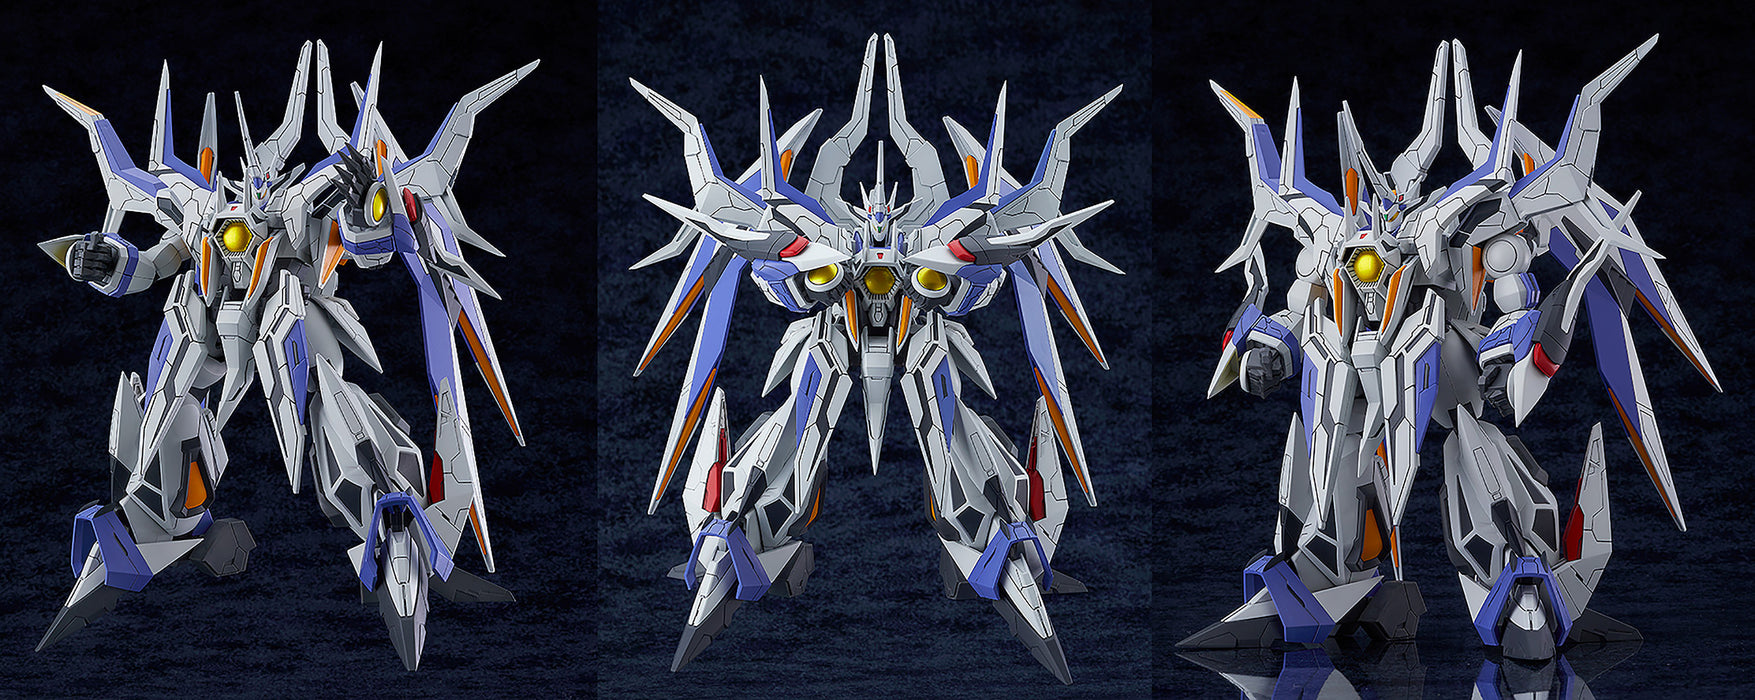 Good Smile Hades Project Zeorymer - Great Zeorymer Moderoid Model Kit